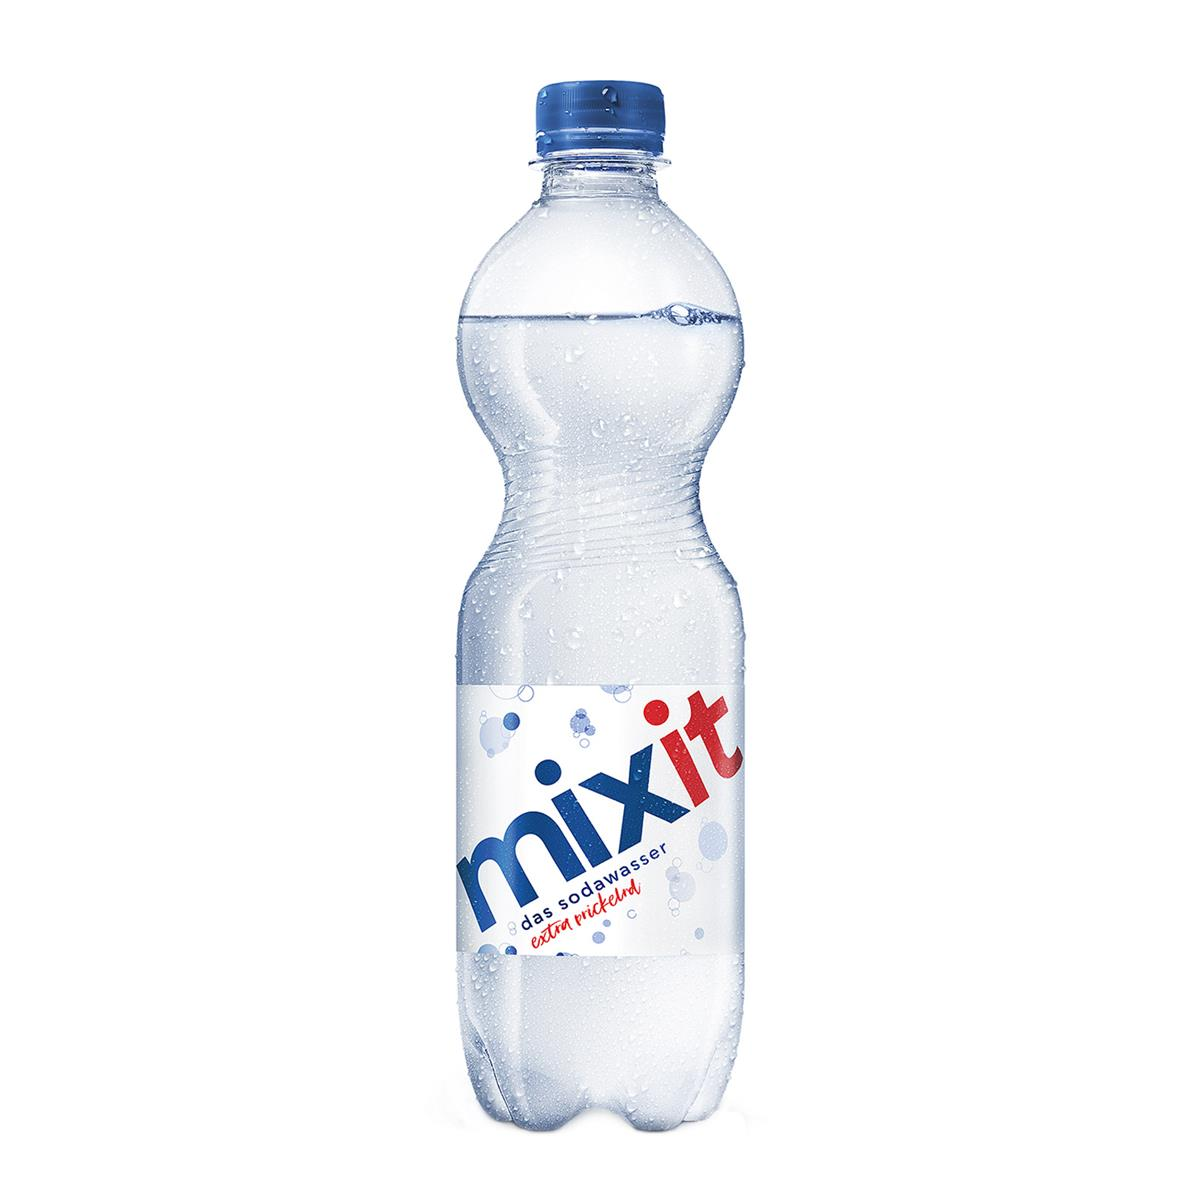 Mix It Sodawasser Online Bestellen Billa - Soda Wasser